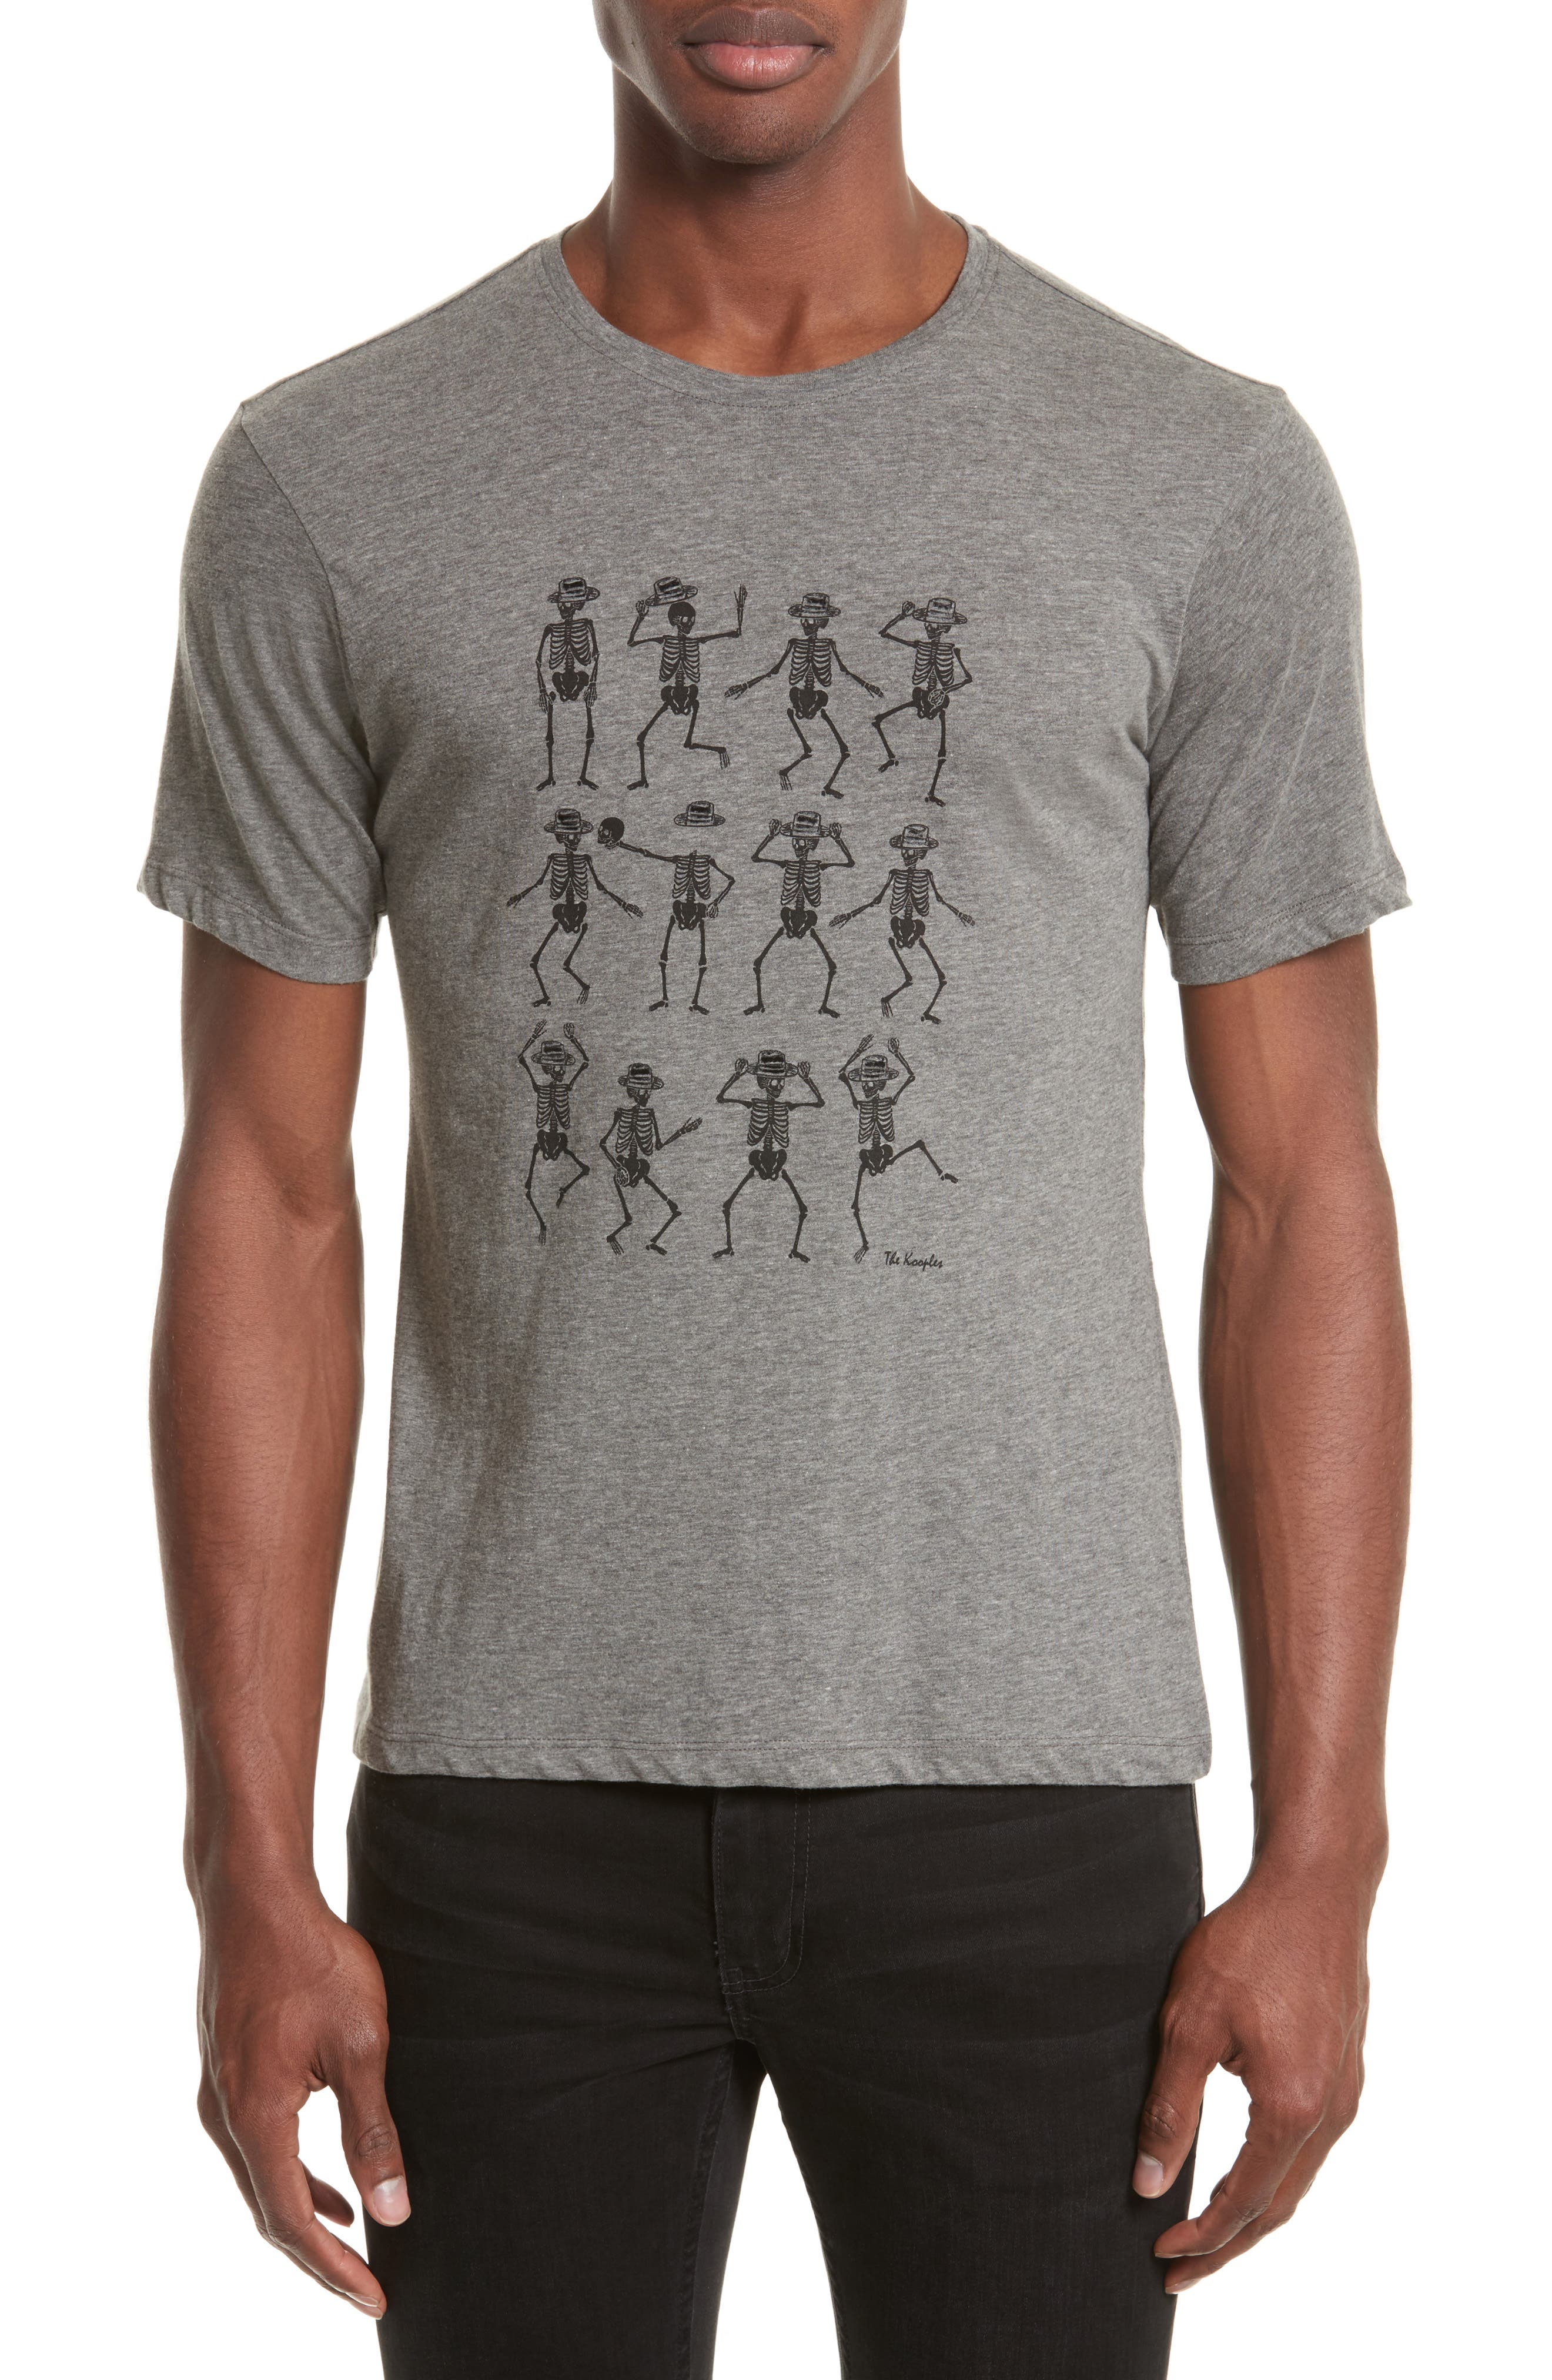 Alternate Image 1 Selected - The Kooples Dancing Skeleton Graphic T-Shirt